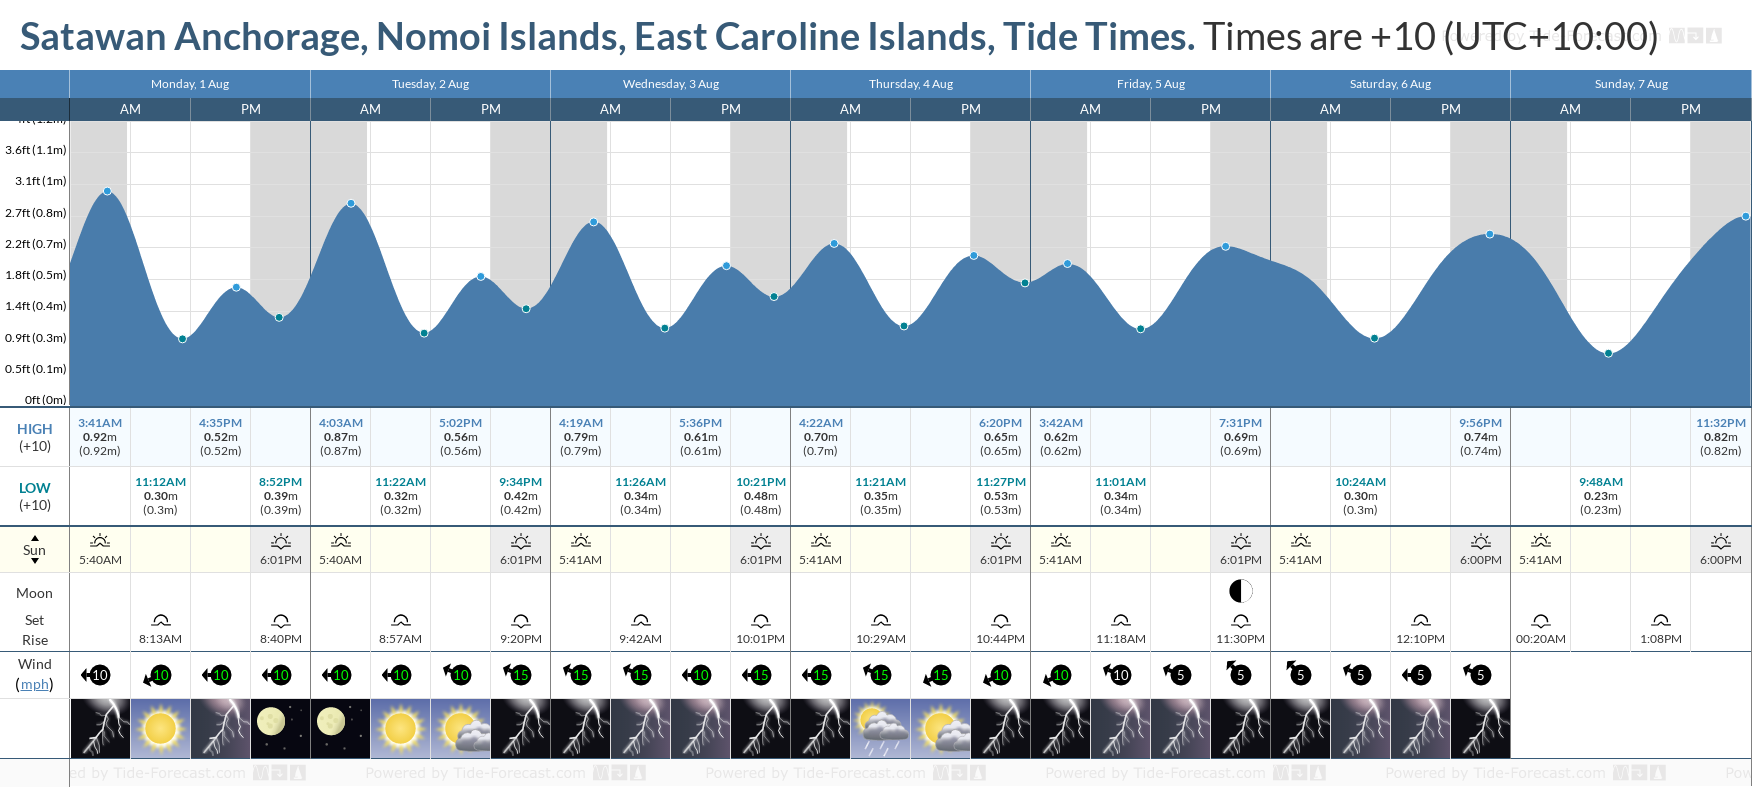 Satawan Anchorage, Nomoi Islands, East Caroline Islands Tide Chart including high and low tide tide times for the next 7 days